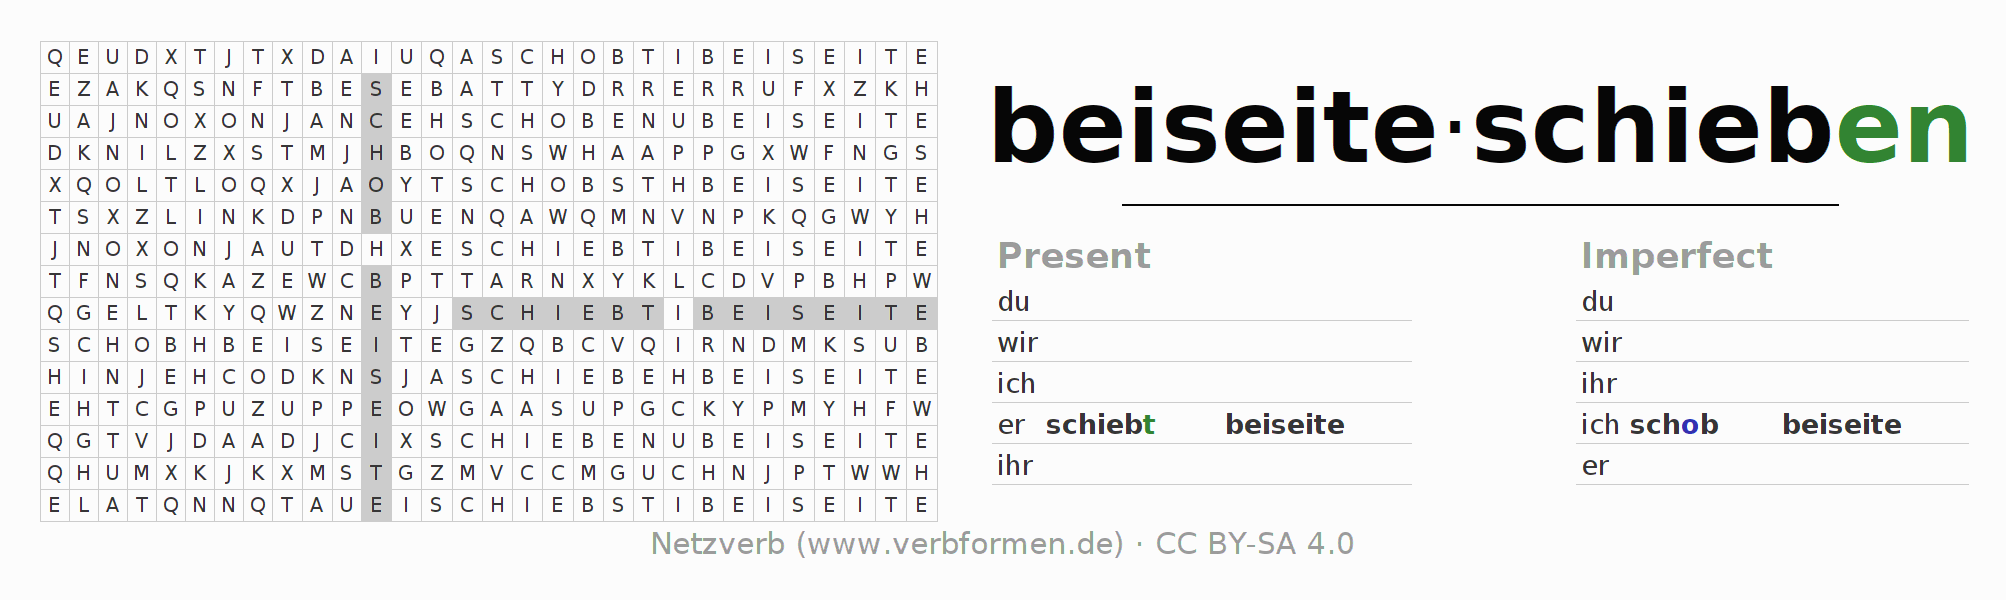 Word search puzzle for the conjugation of the verb beiseiteschieben